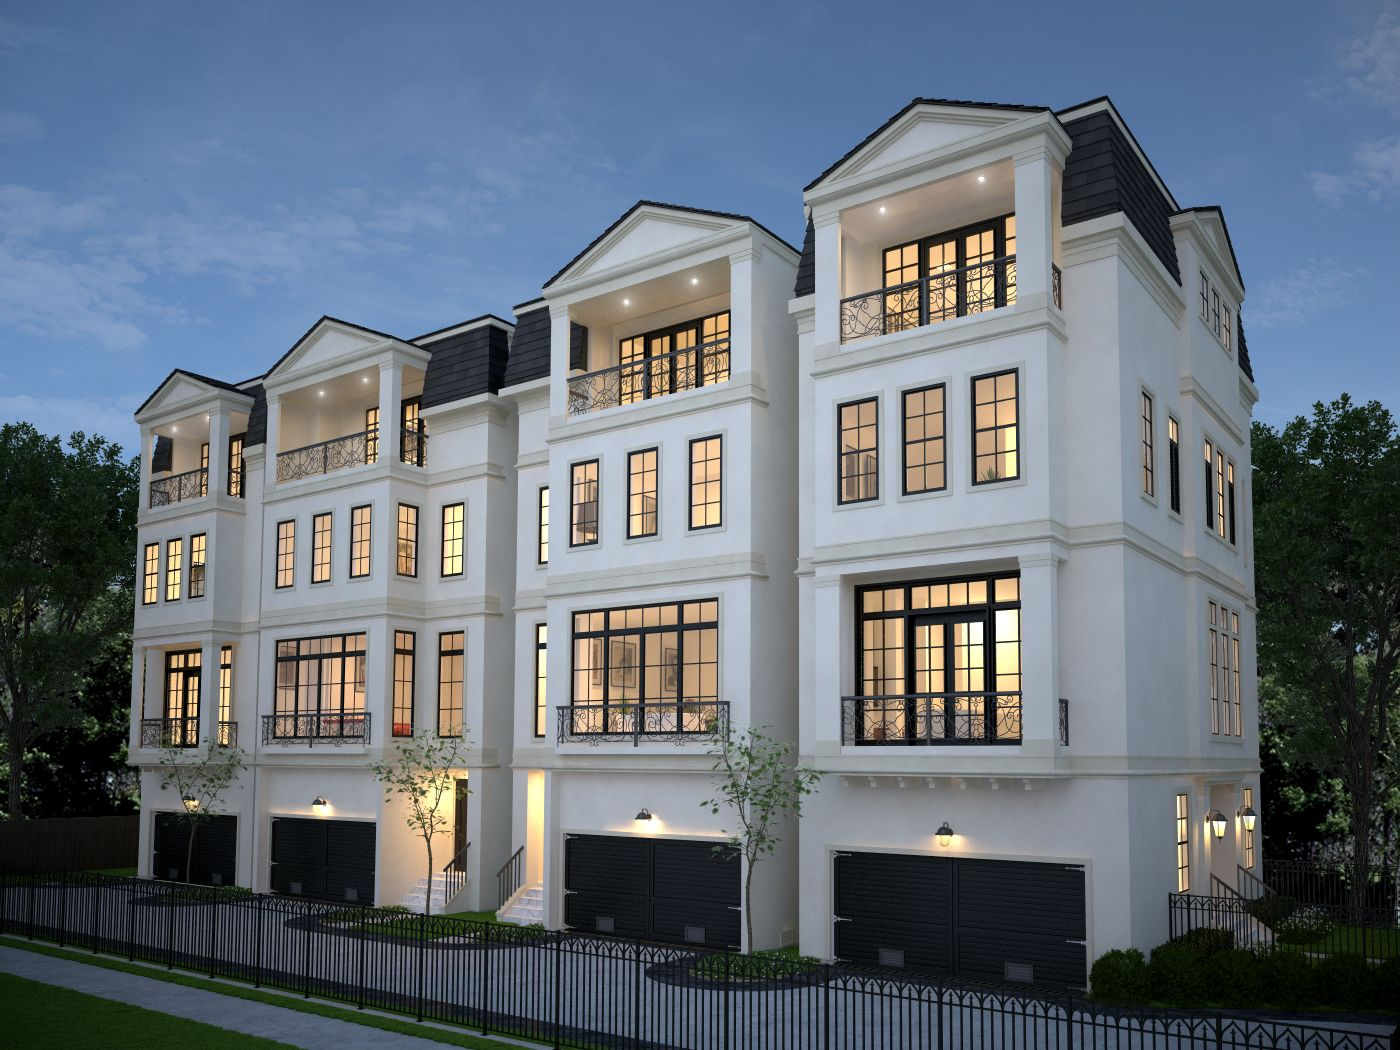 Four 4 story townhomes in houston by preston wood assoc for Modern townhouse architecture